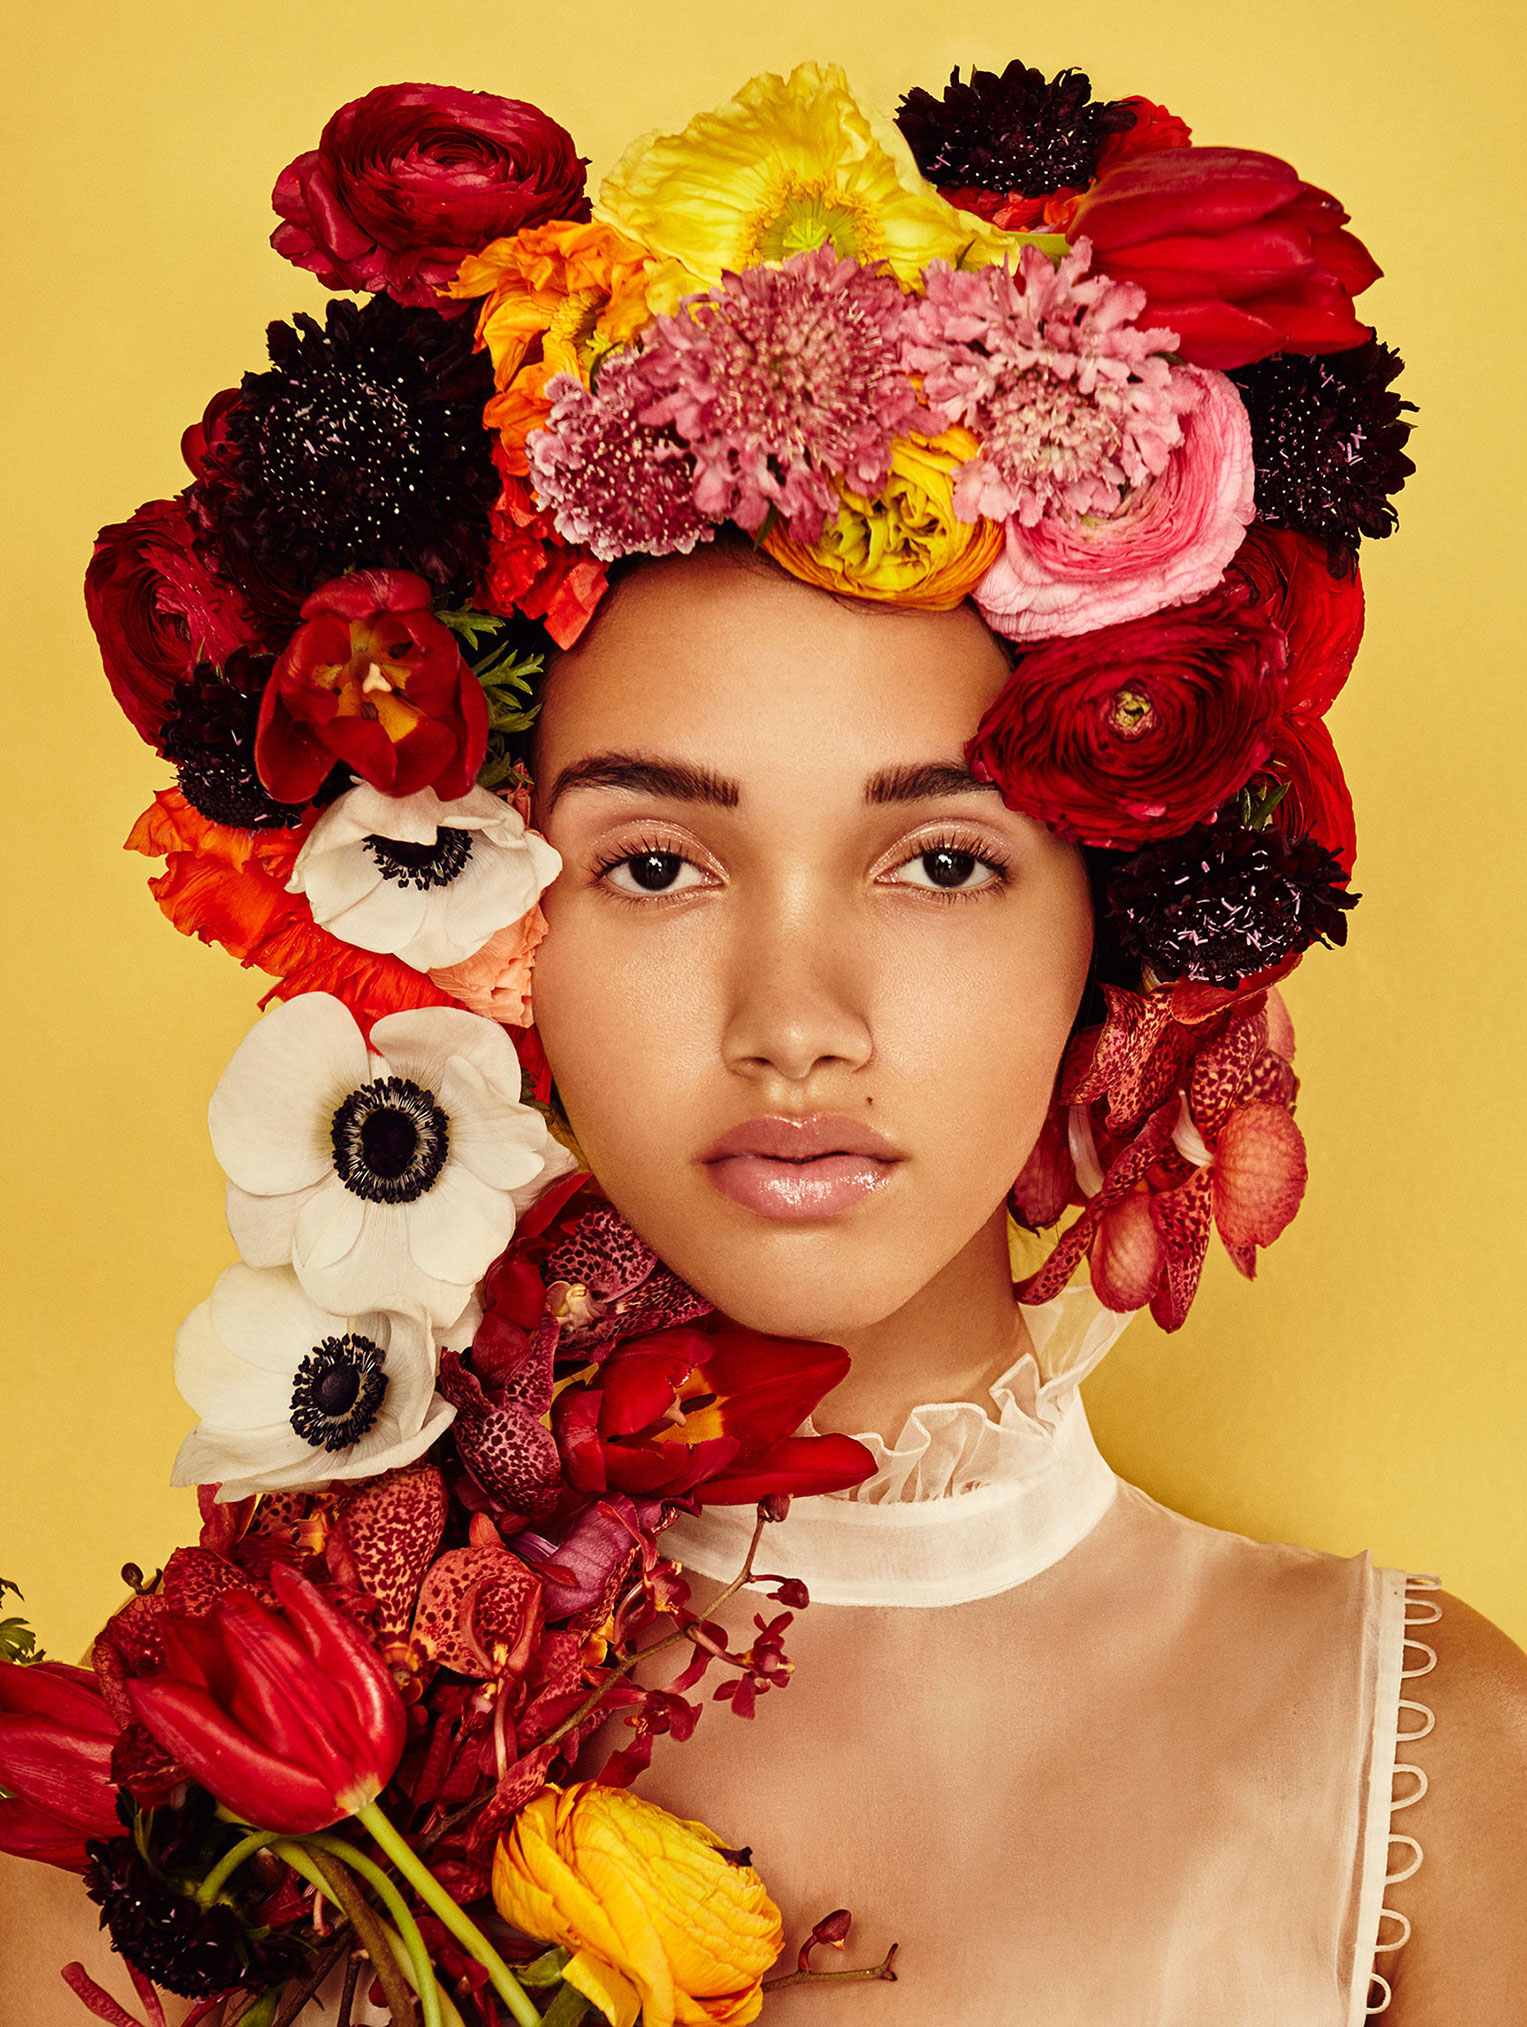 Cassey Chanel by Jenny Brough / Evening Standard Magazine may 2016